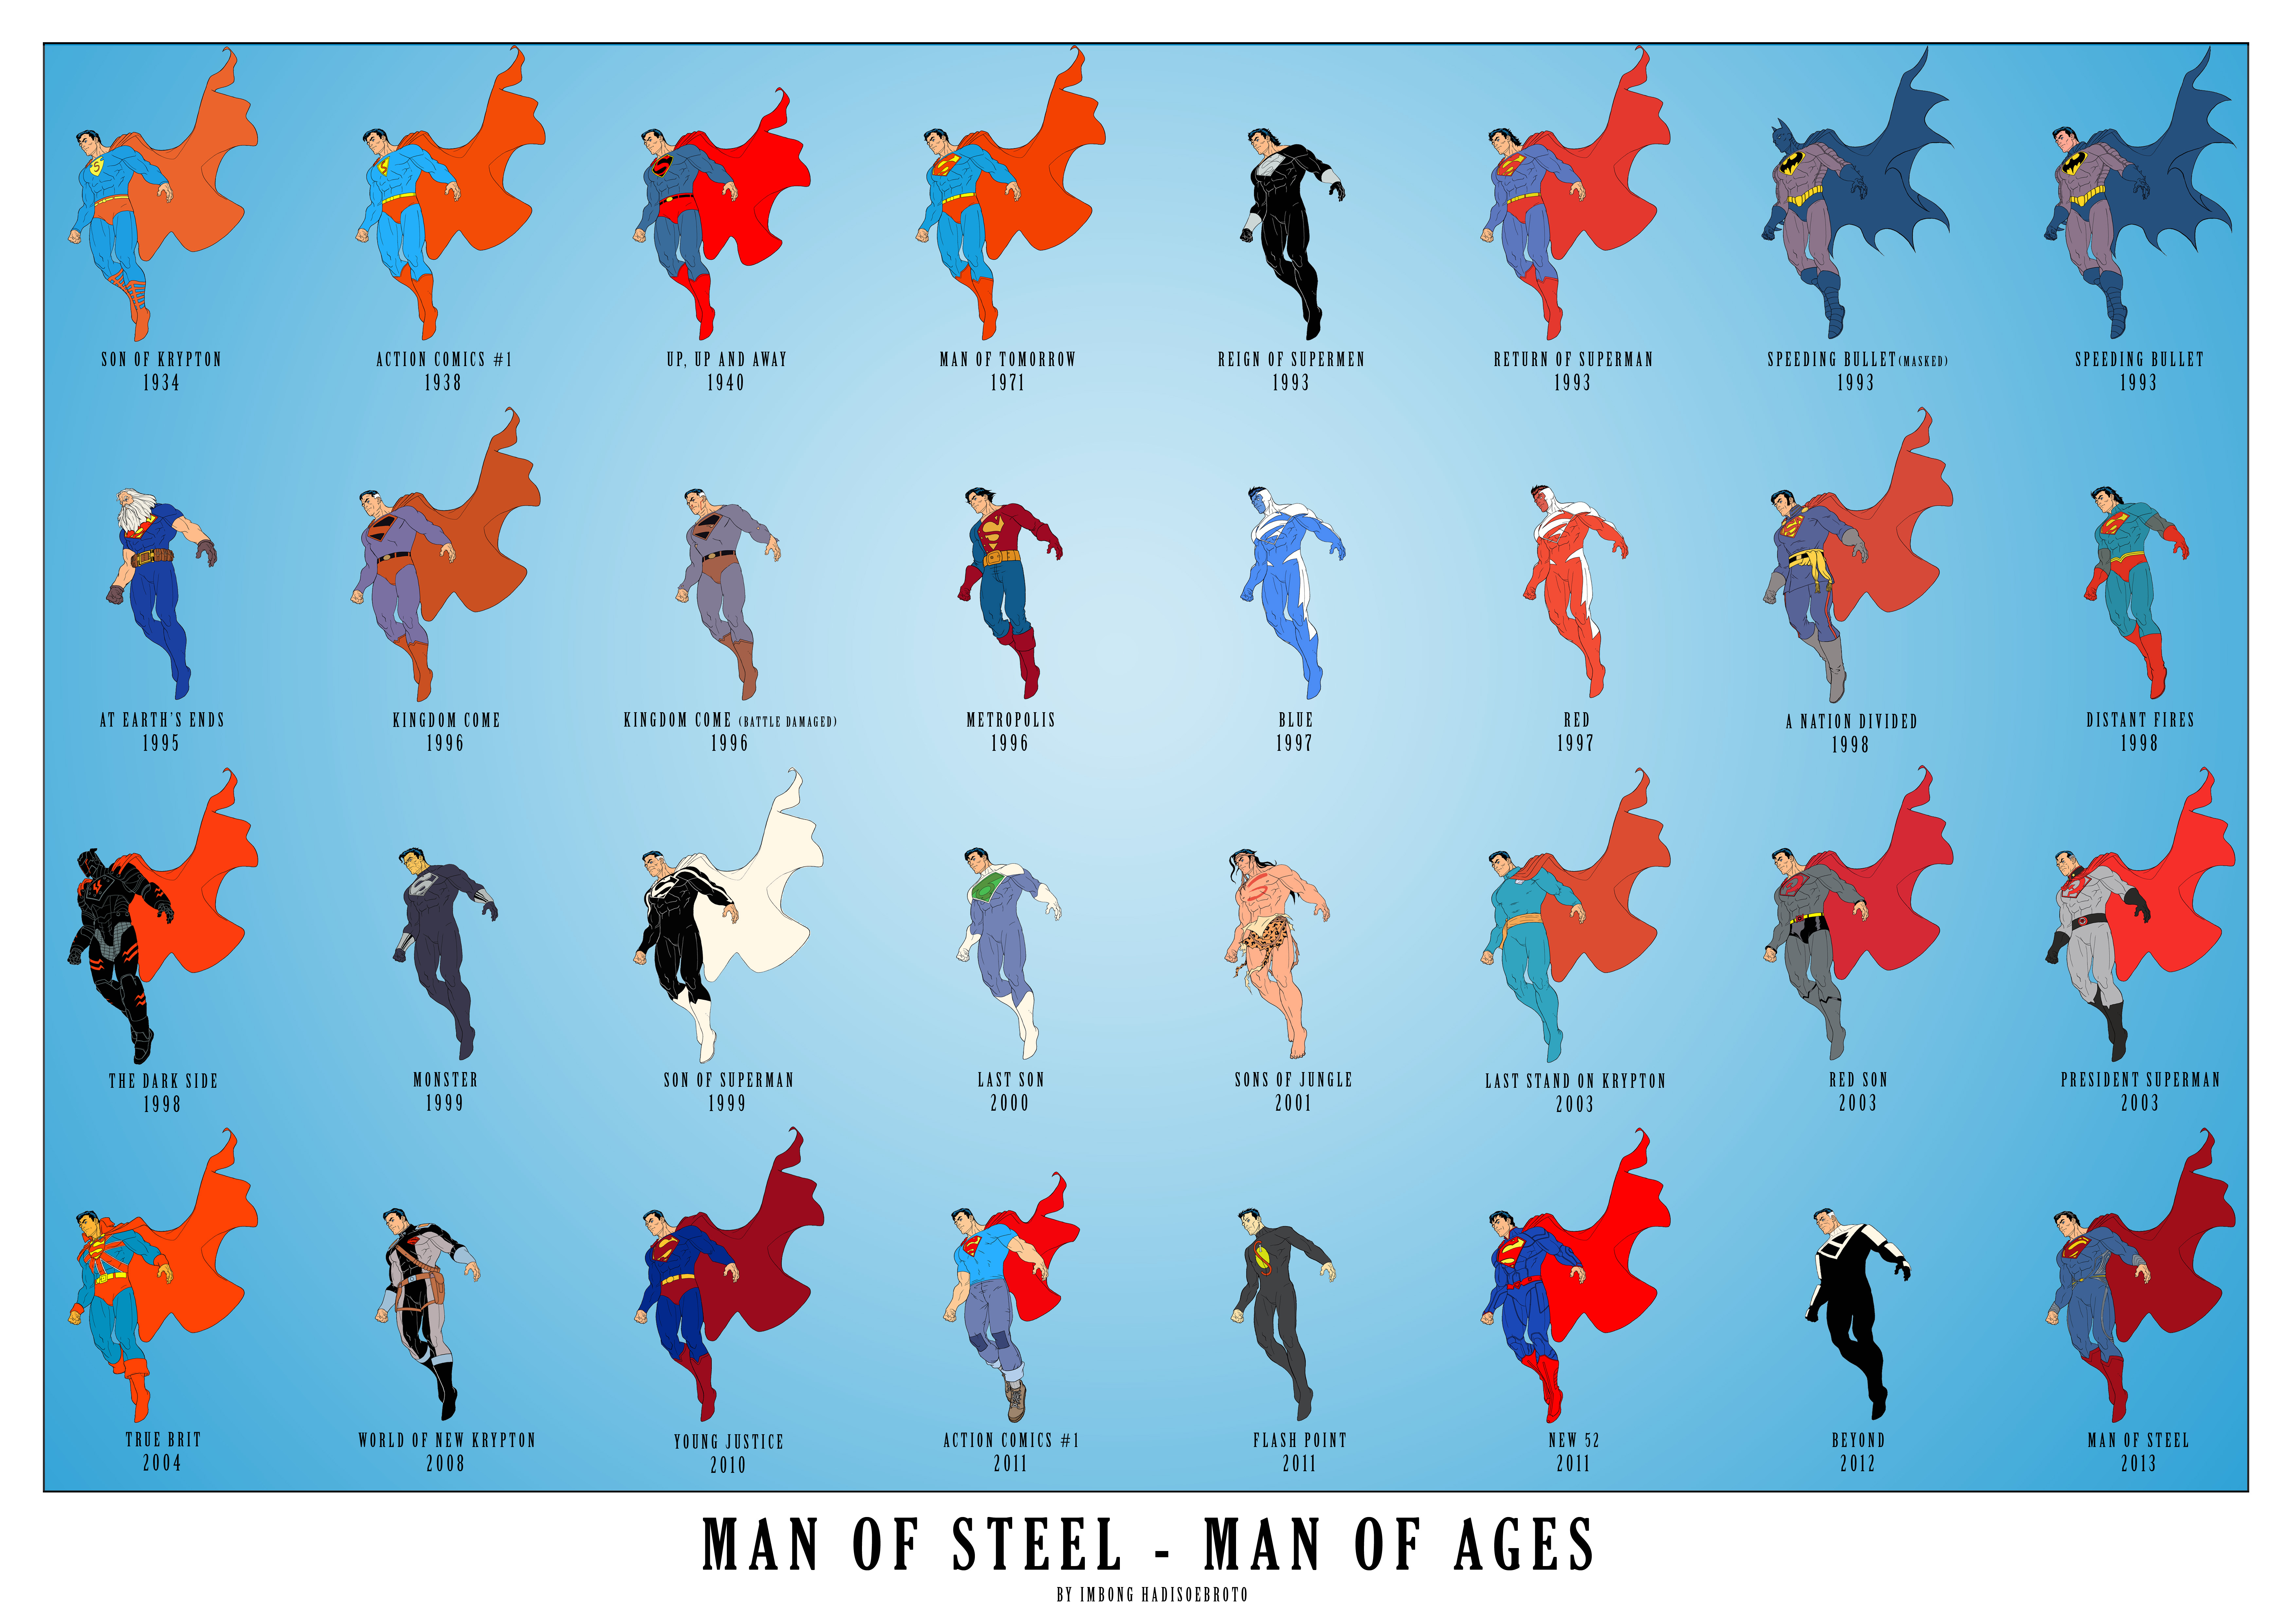 January 23, 2013: Man of Steel - Man of Ages: Superman Costume Chart